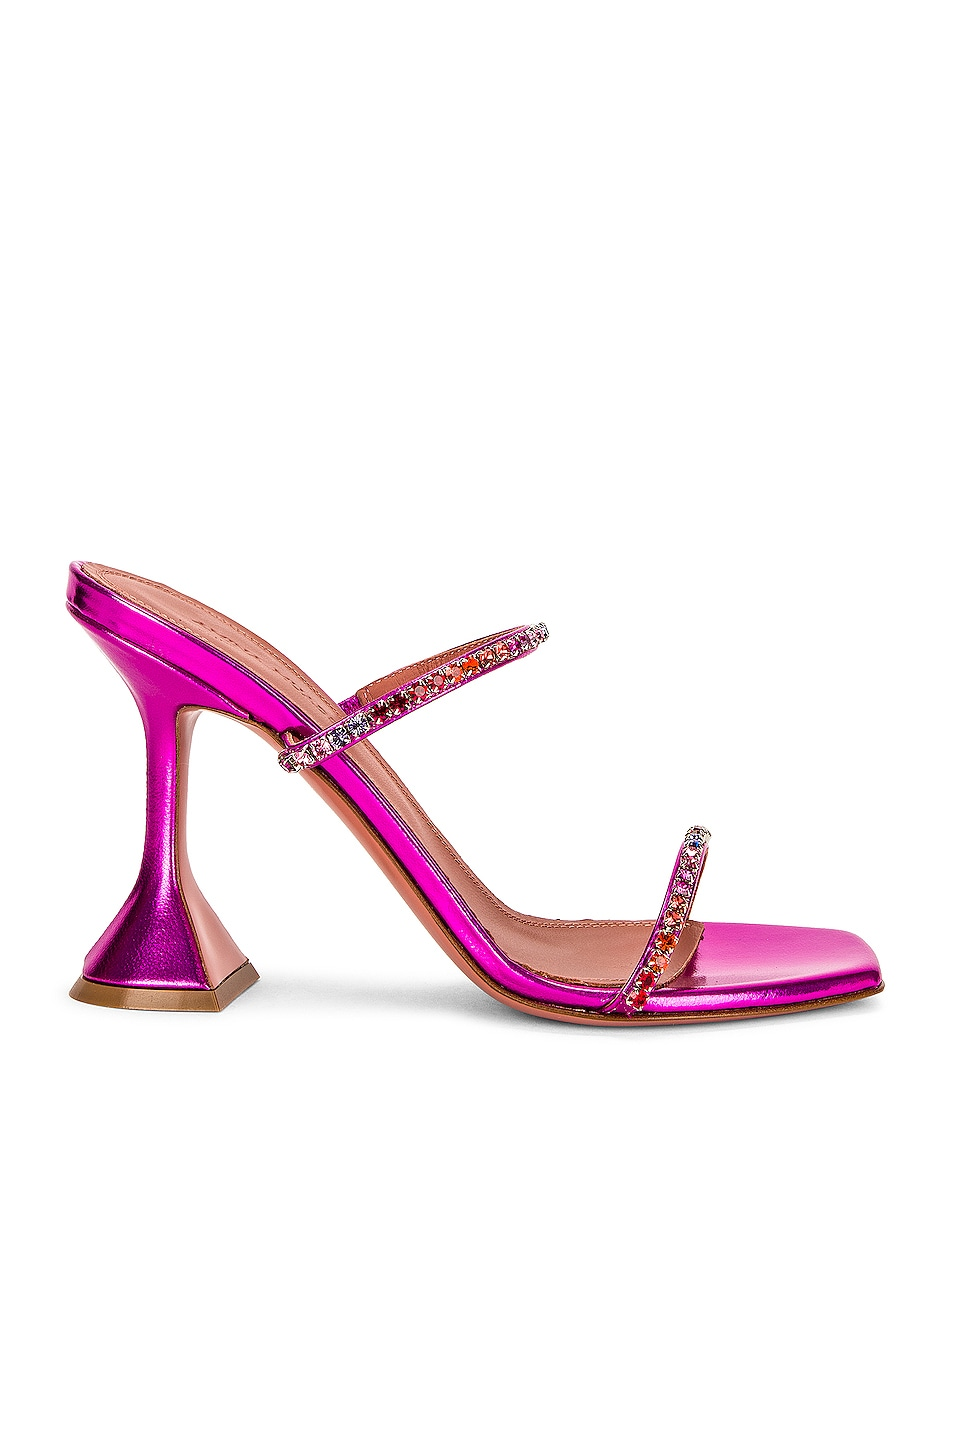 Image 1 of AMINA MUADDI Gilda Slipper in Fuchsia Hologram & Sunset Rainbow